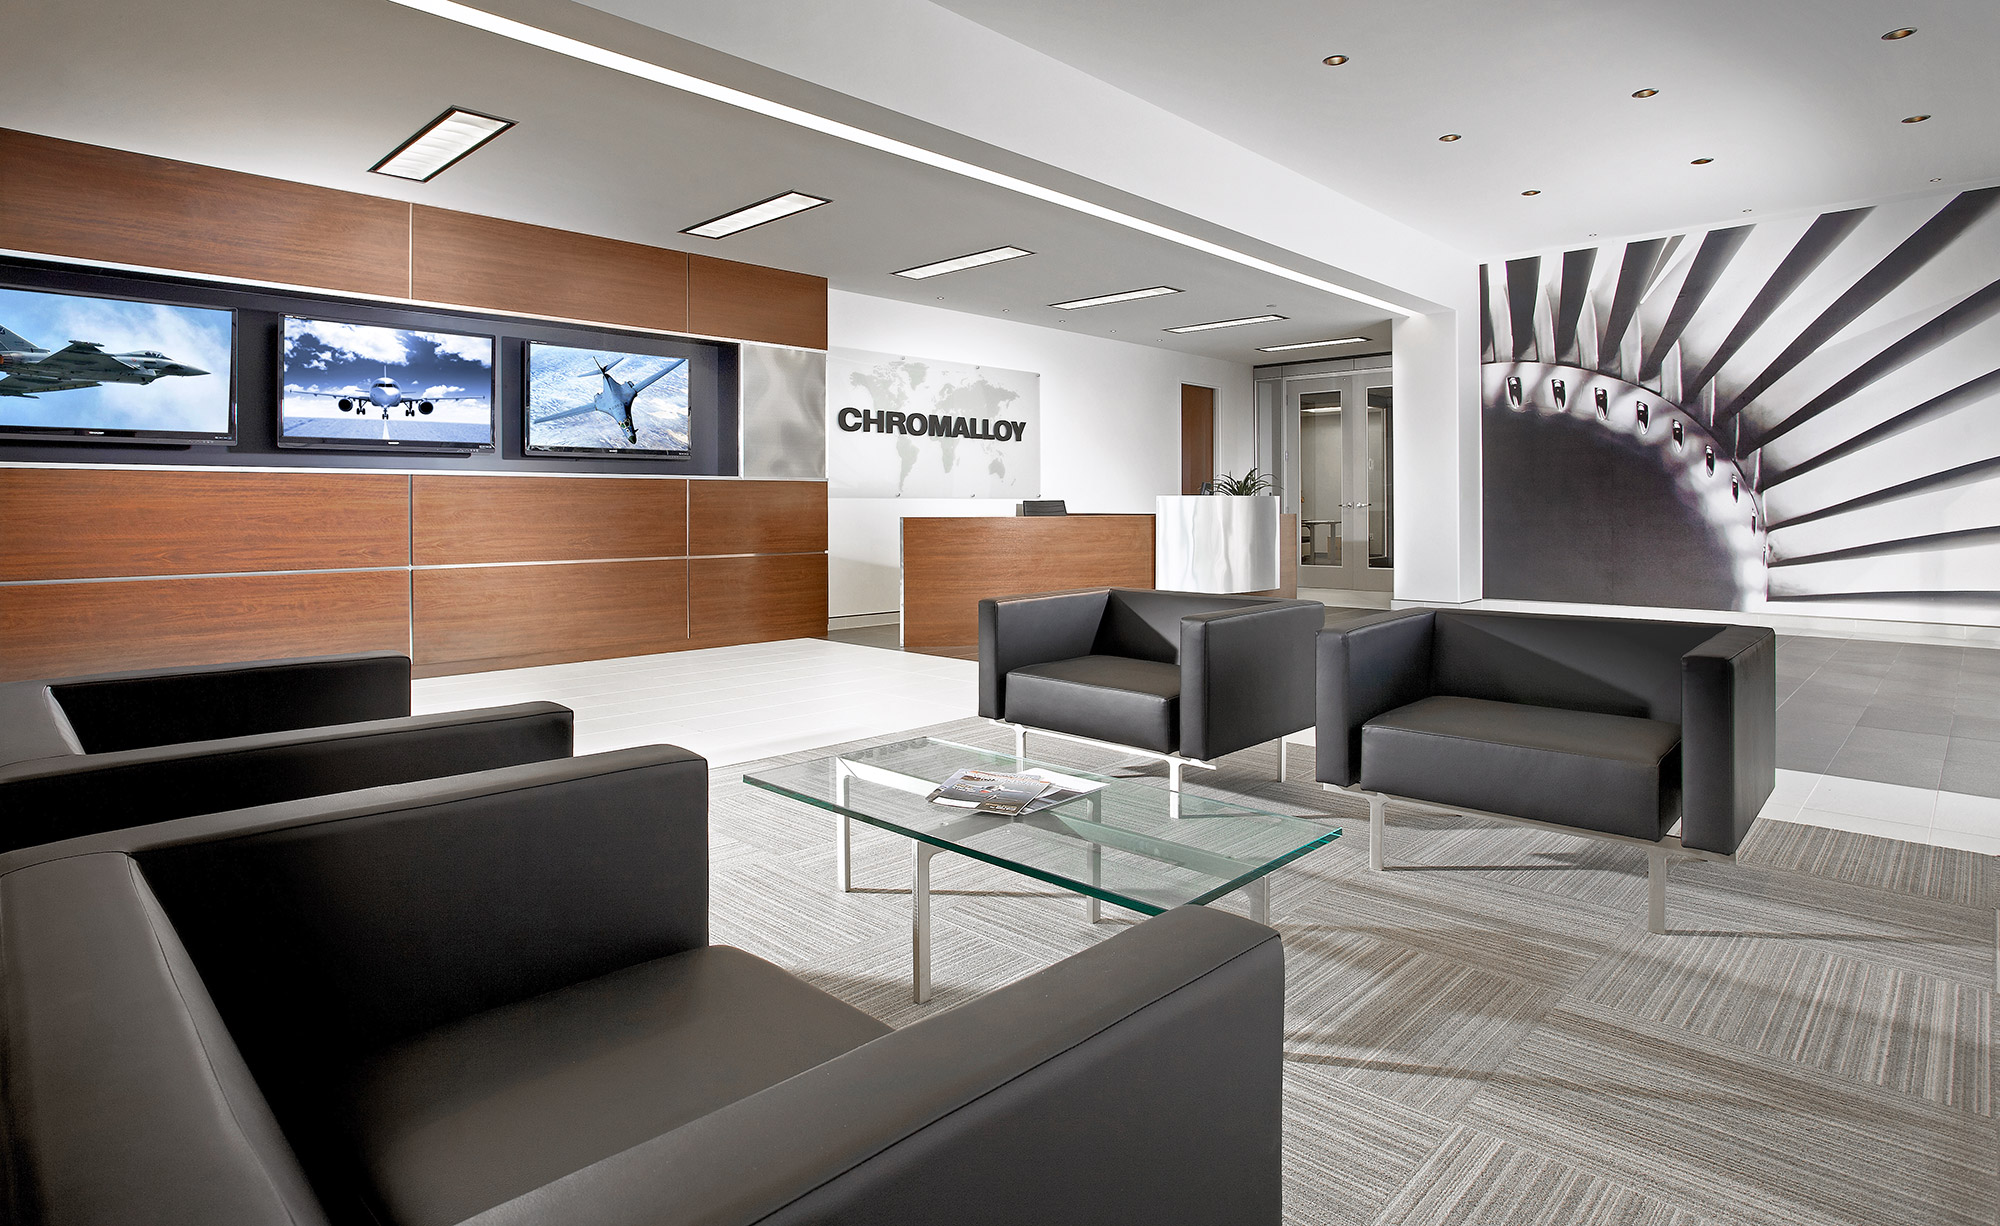 Chromalloy-Lobby-Aeronautical-Manufacturer-Commercial-Design-Photography